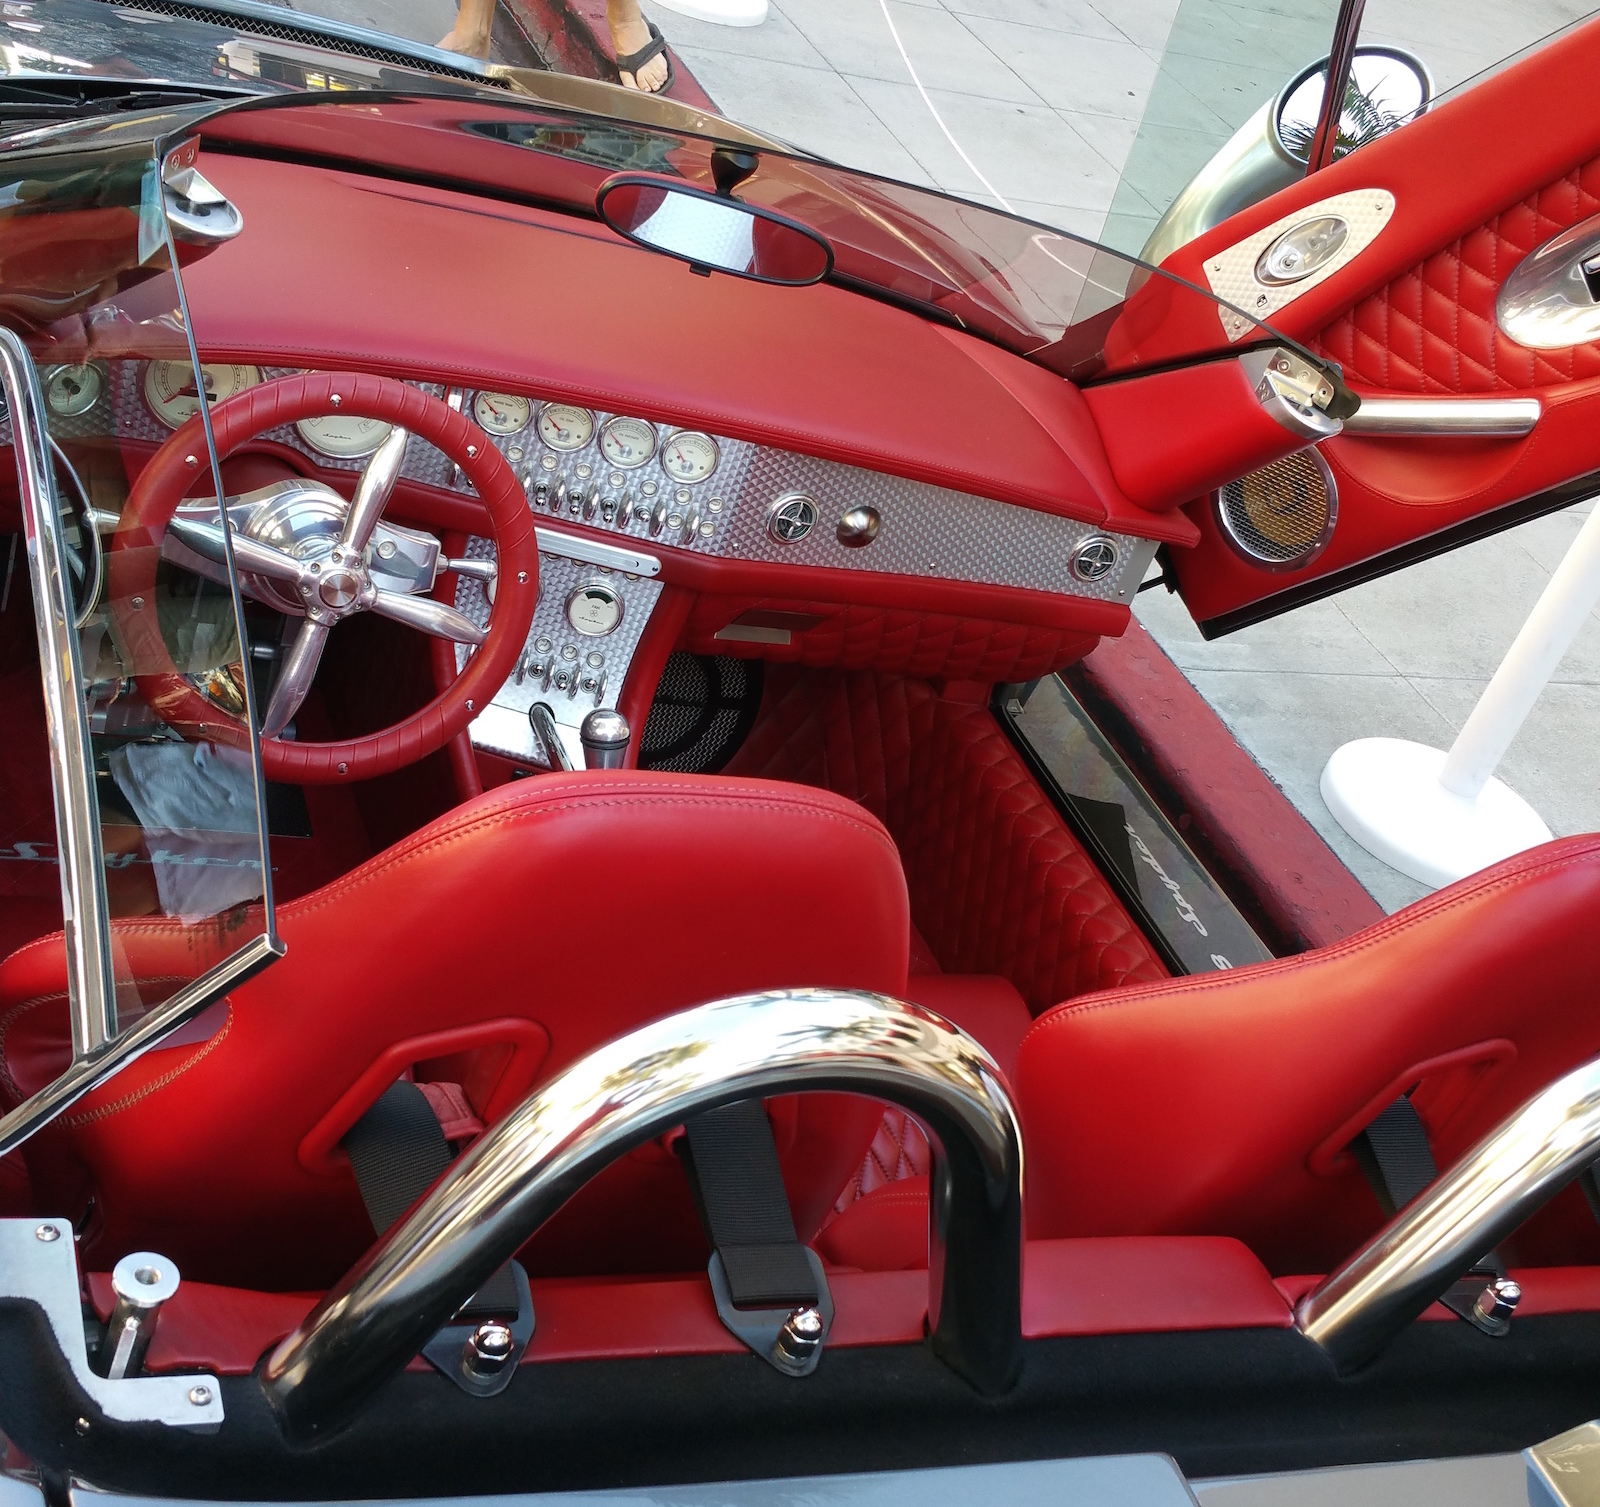 The Beauty And Style Of The Car Interior